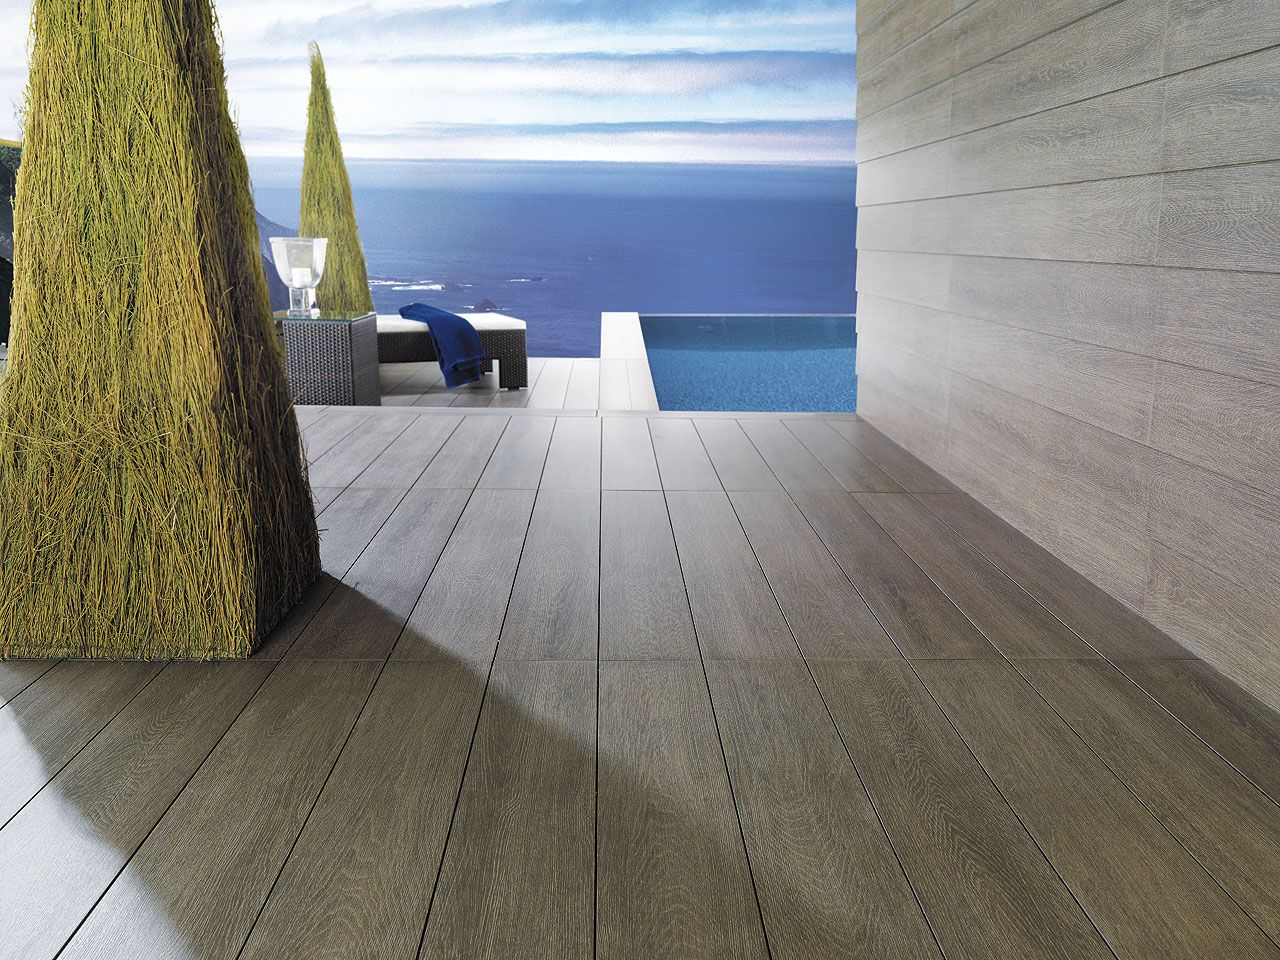 Wood Effect Tiles Par Ker™ Wood Effect Tiles Are A Highly Valued